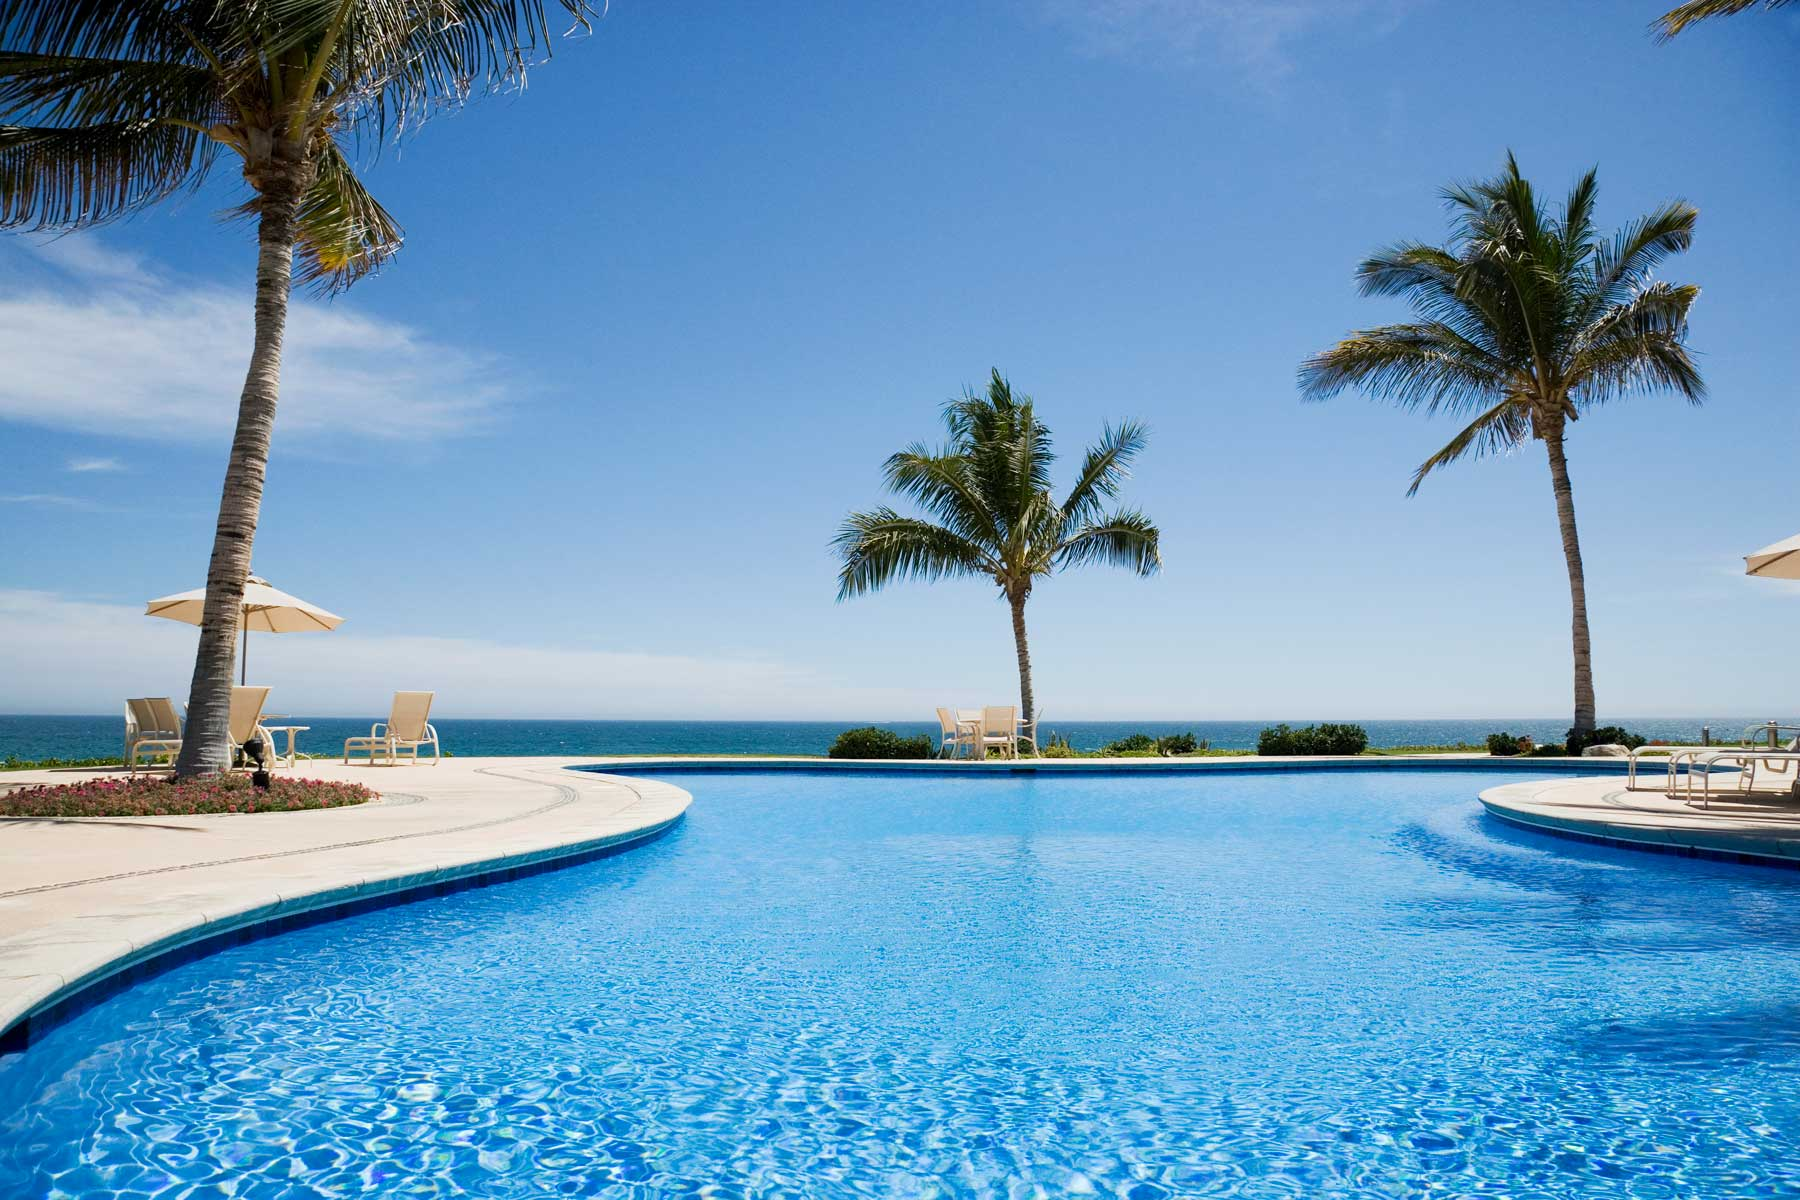 Vibrant blue water of a hotel pool surrounded by palm trees near the ocean